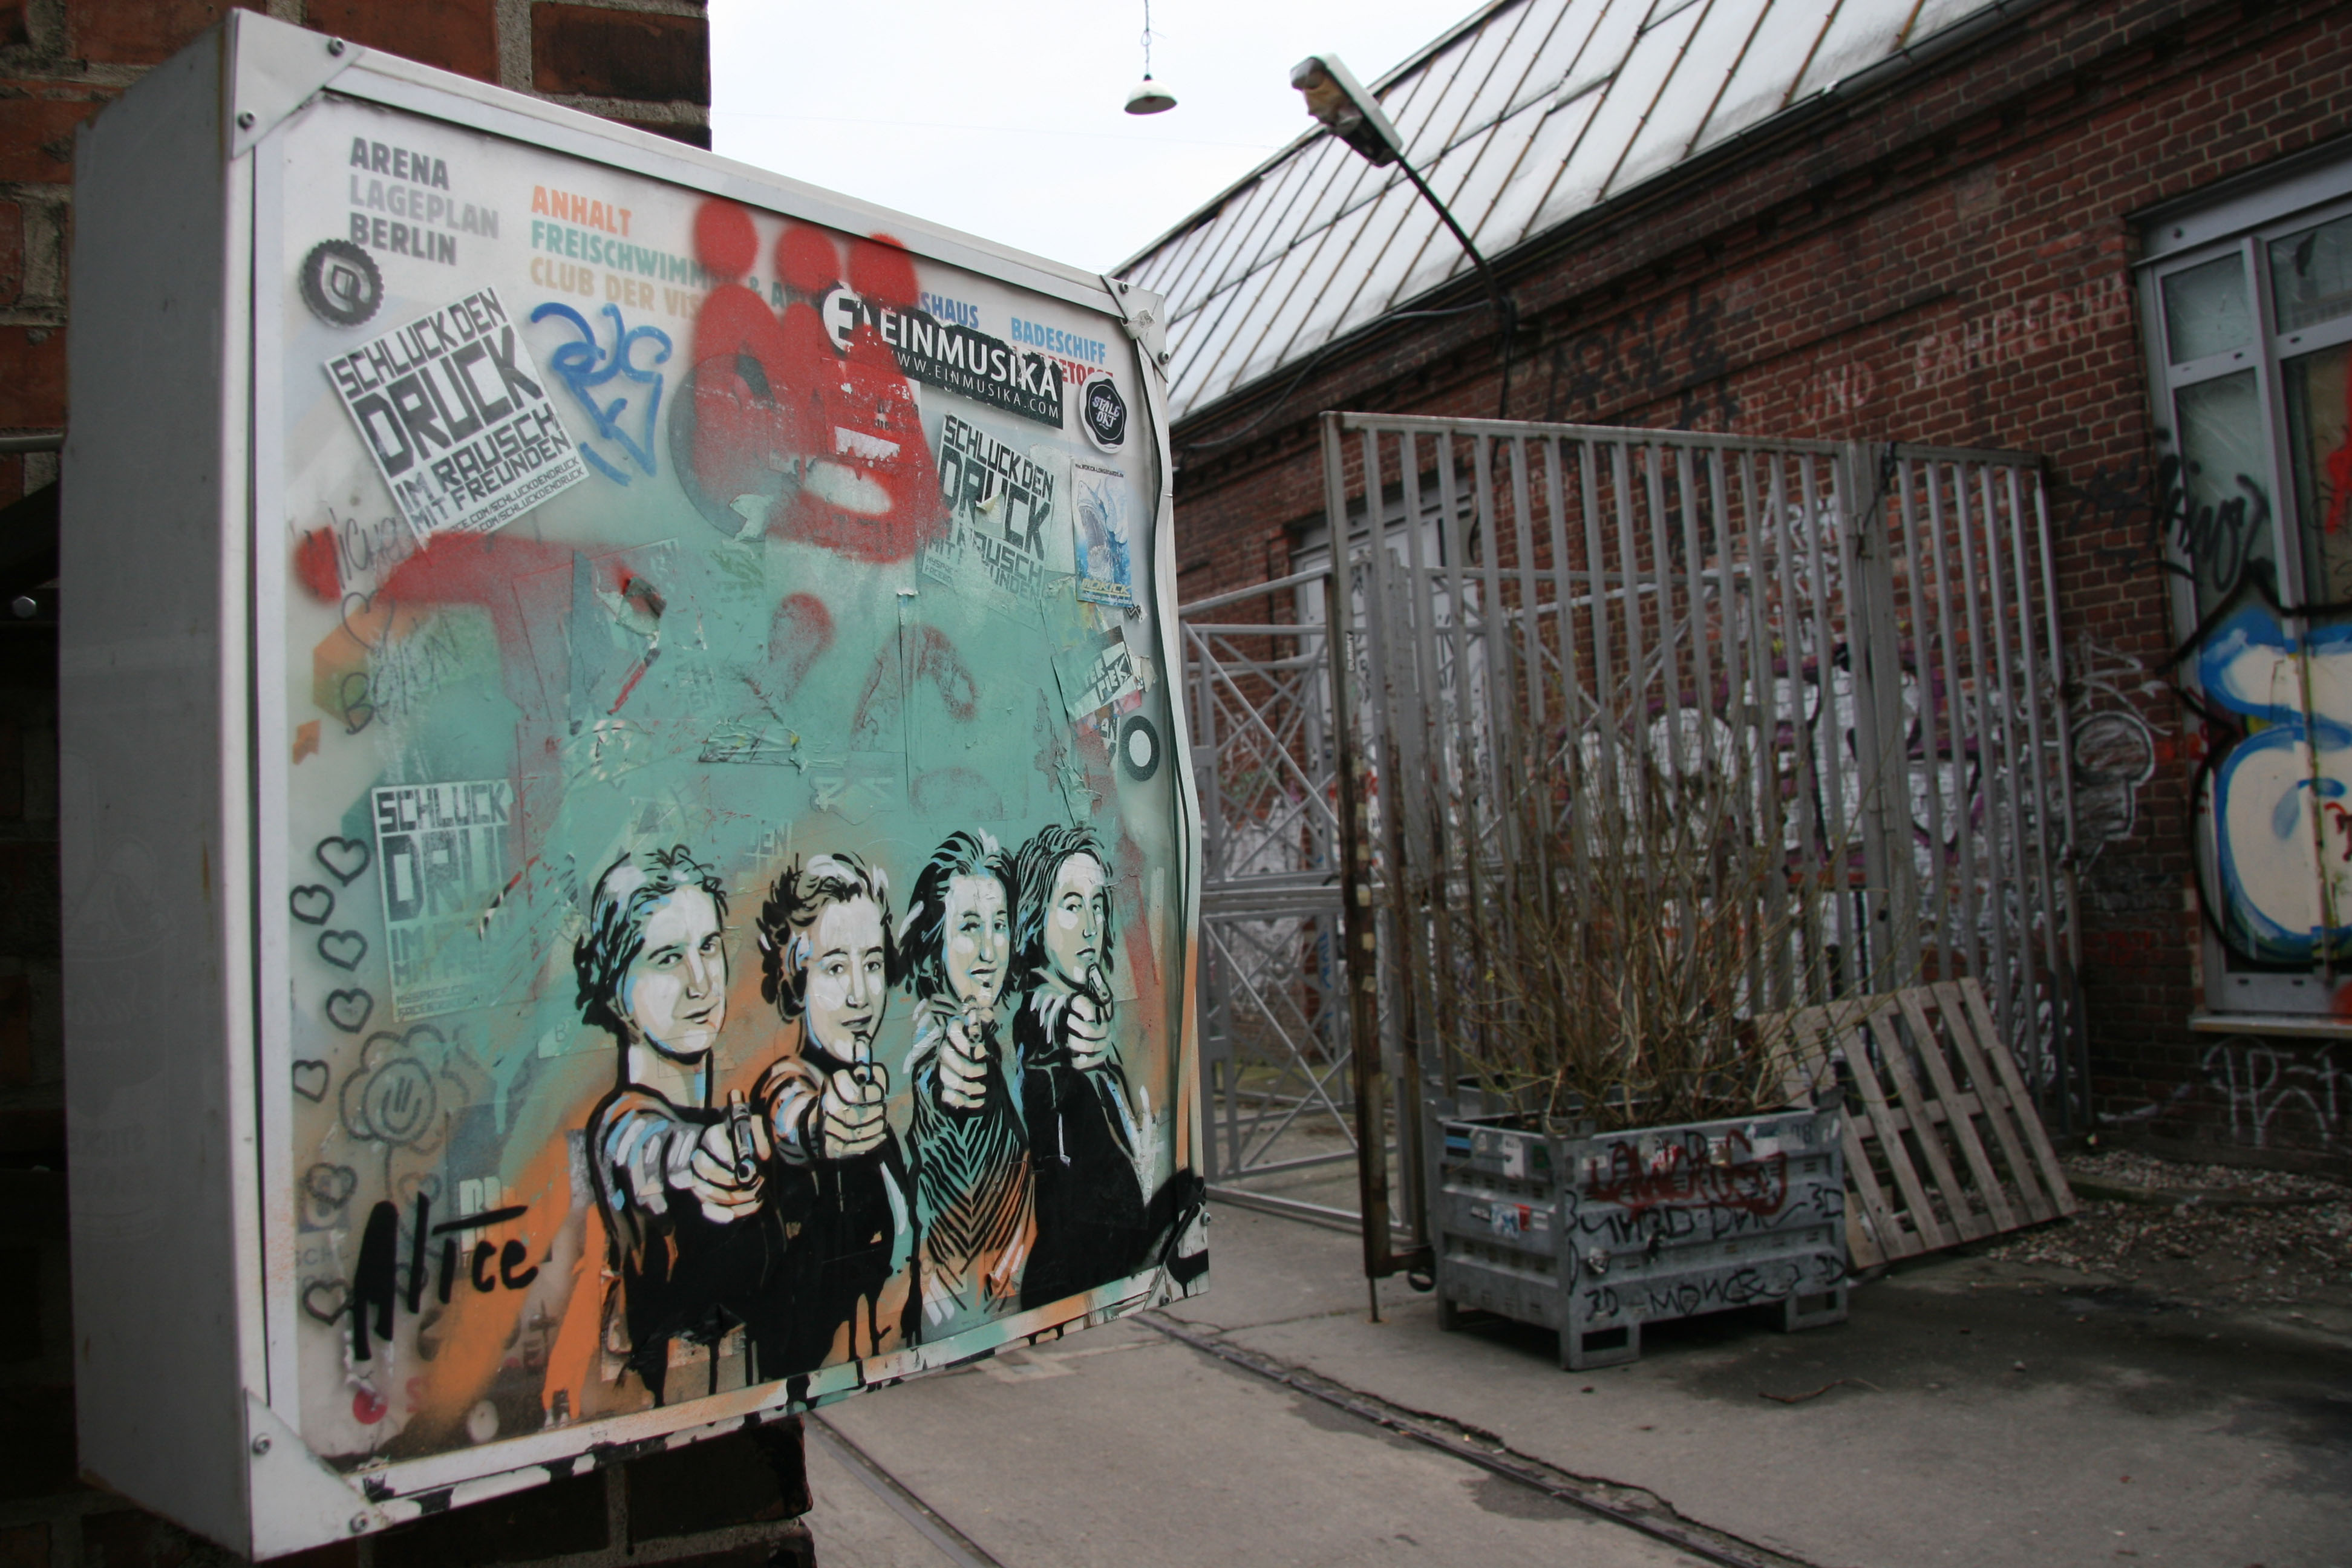 Gang of Four: Street Art by AliCé (Alice Pasquini) in Berlin